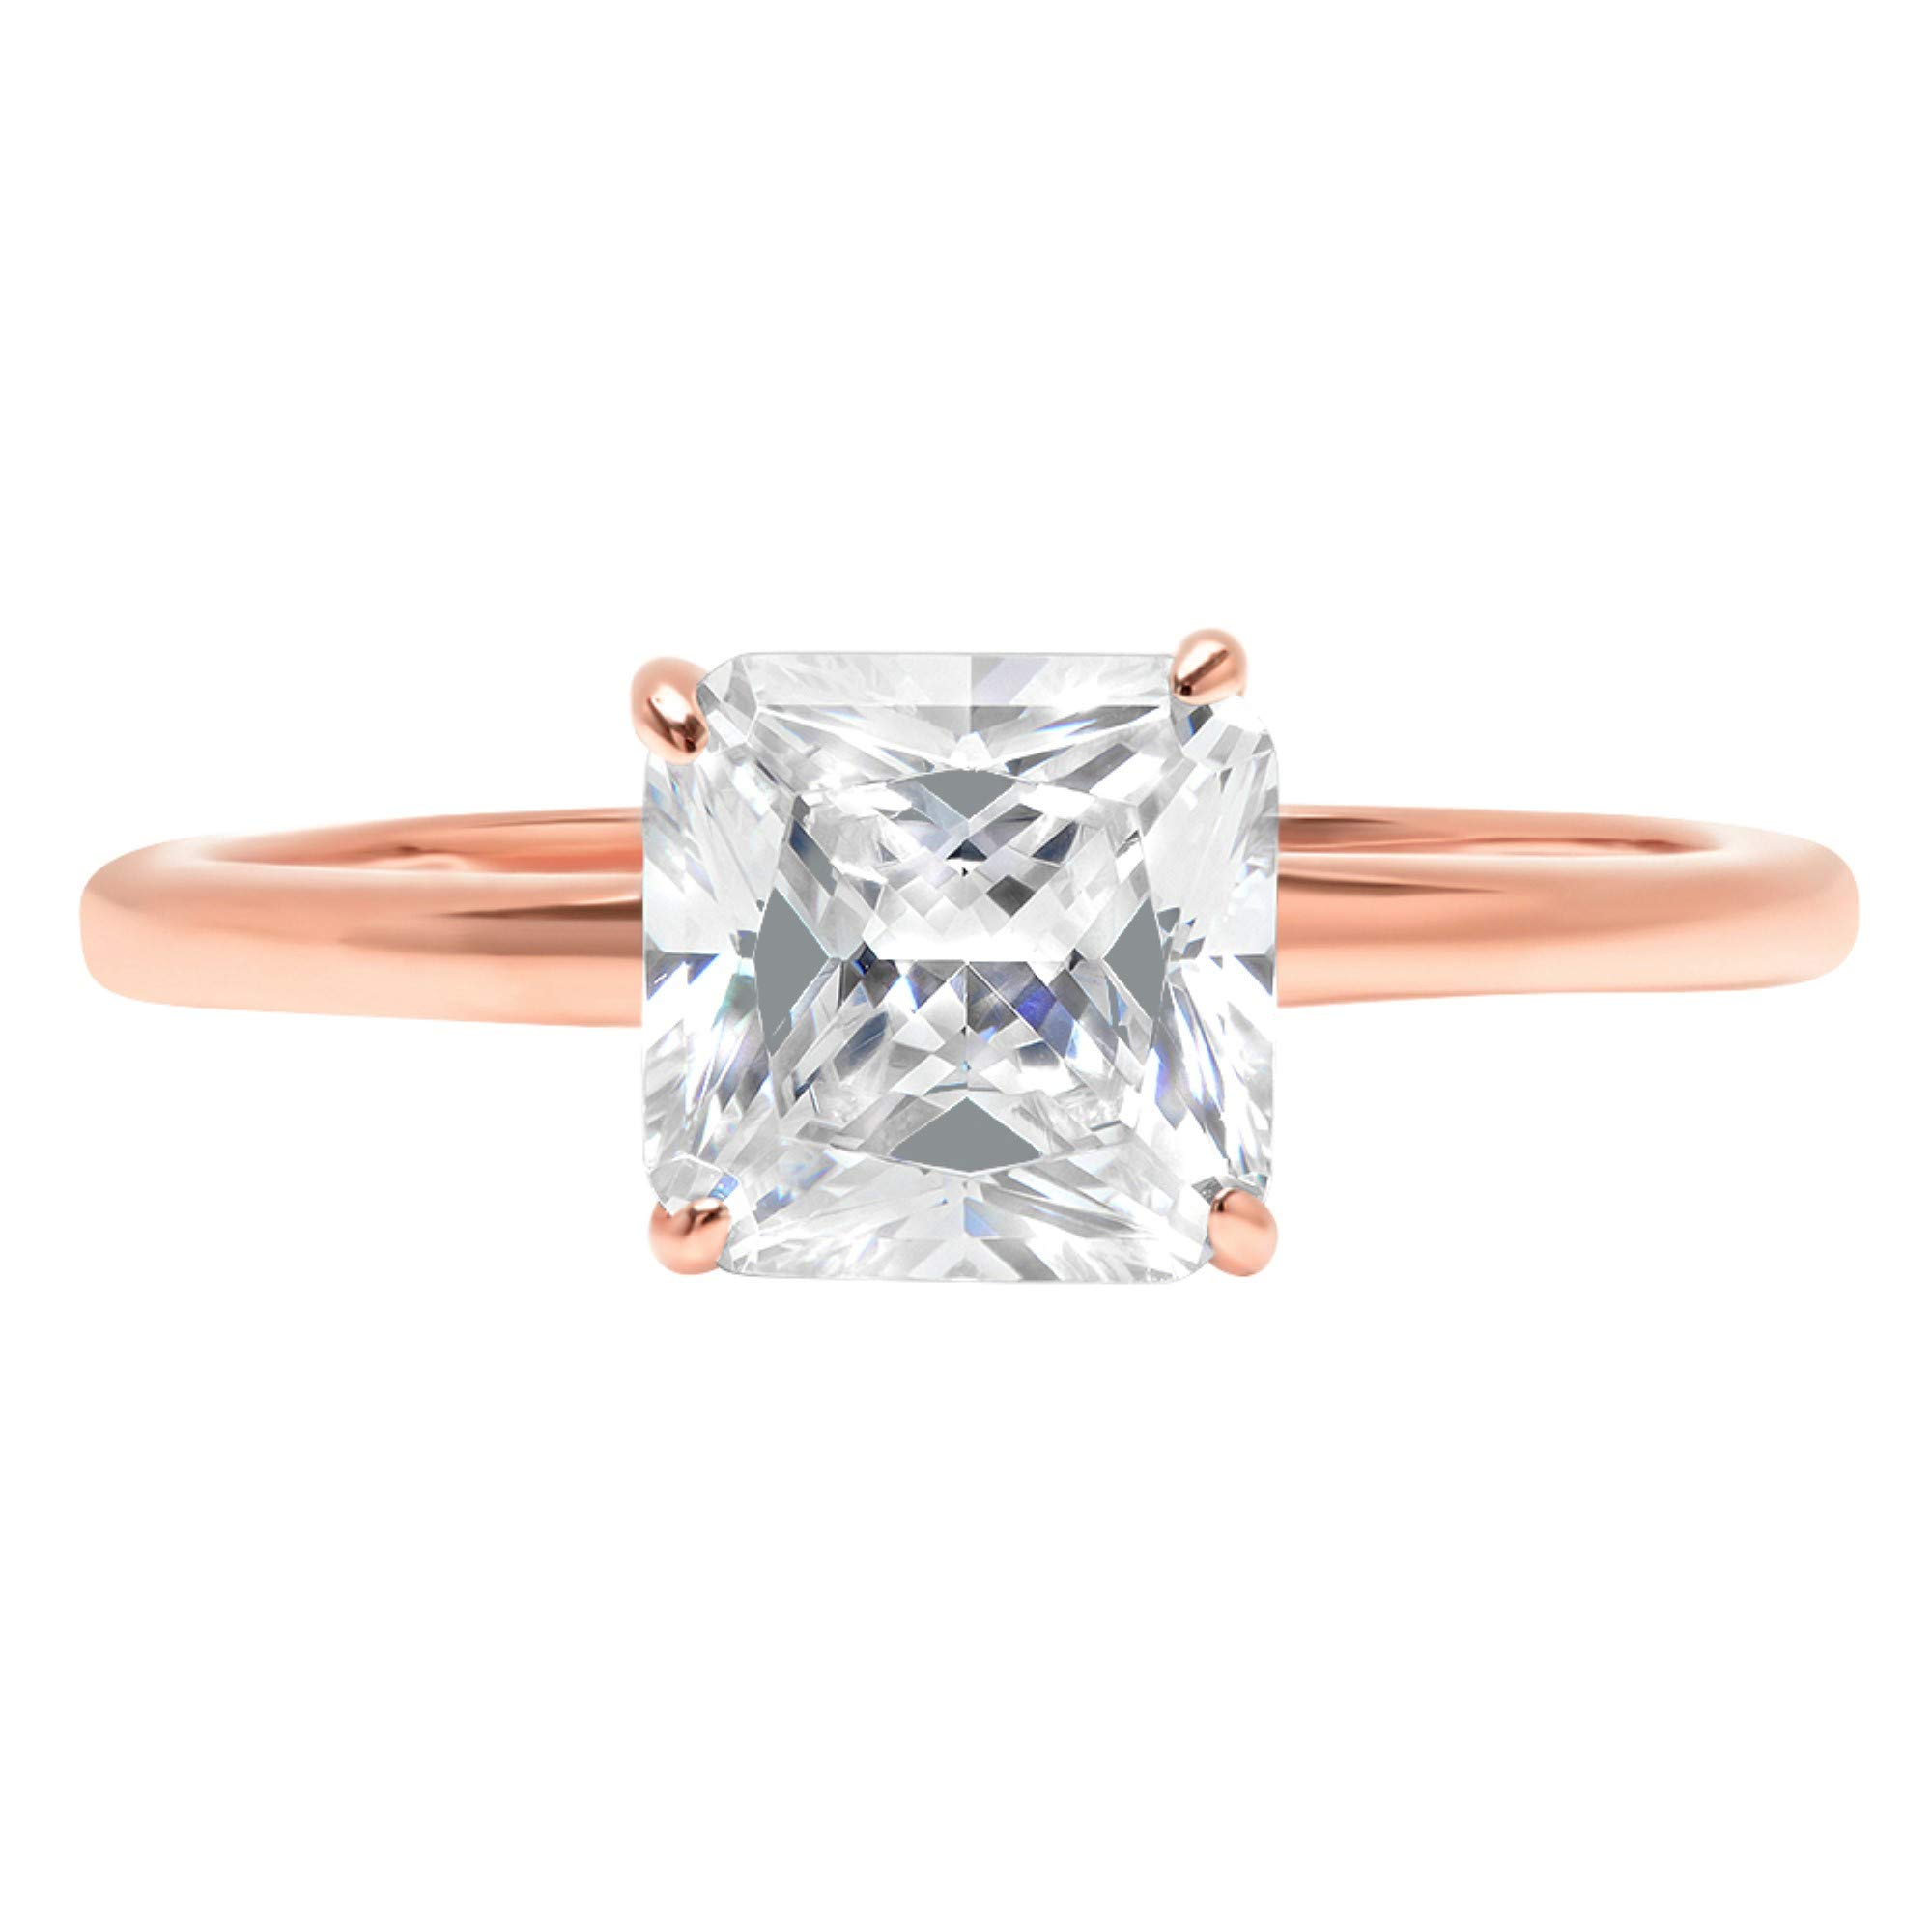 1.45ct Brilliant Asscher Cut Solitaire Highest Quality Lab Created White Sapphire Ideal VVS1 D 4-Prong Classic Designer Statement Ring Solid Real 14k Rose Gold for Women